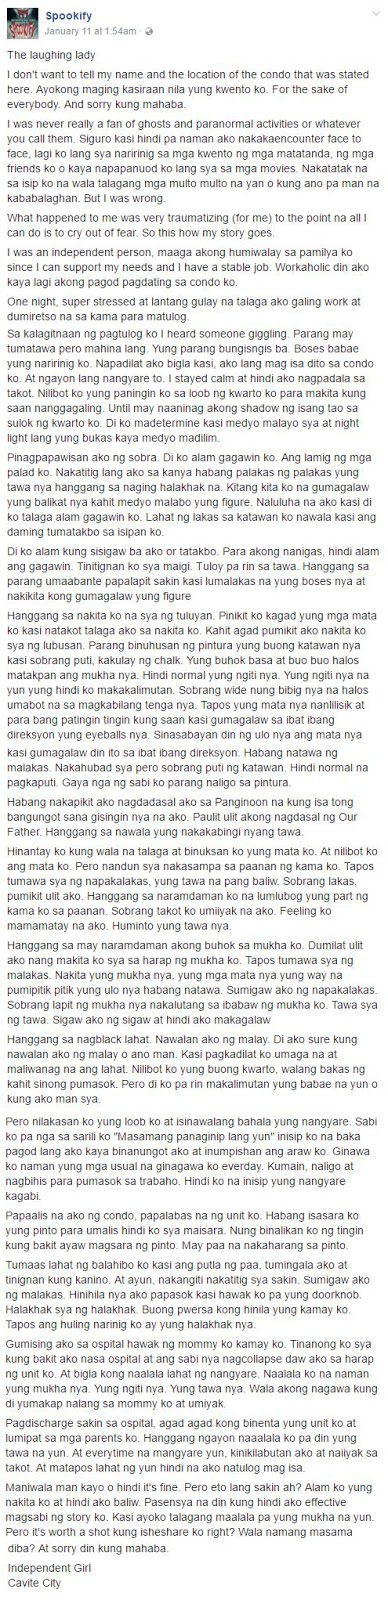 Independent Lady From Cavite Shares Her Most Horrifying Experience In Her Own Condo Unit! This Will Give You Goosebumps! Scary!